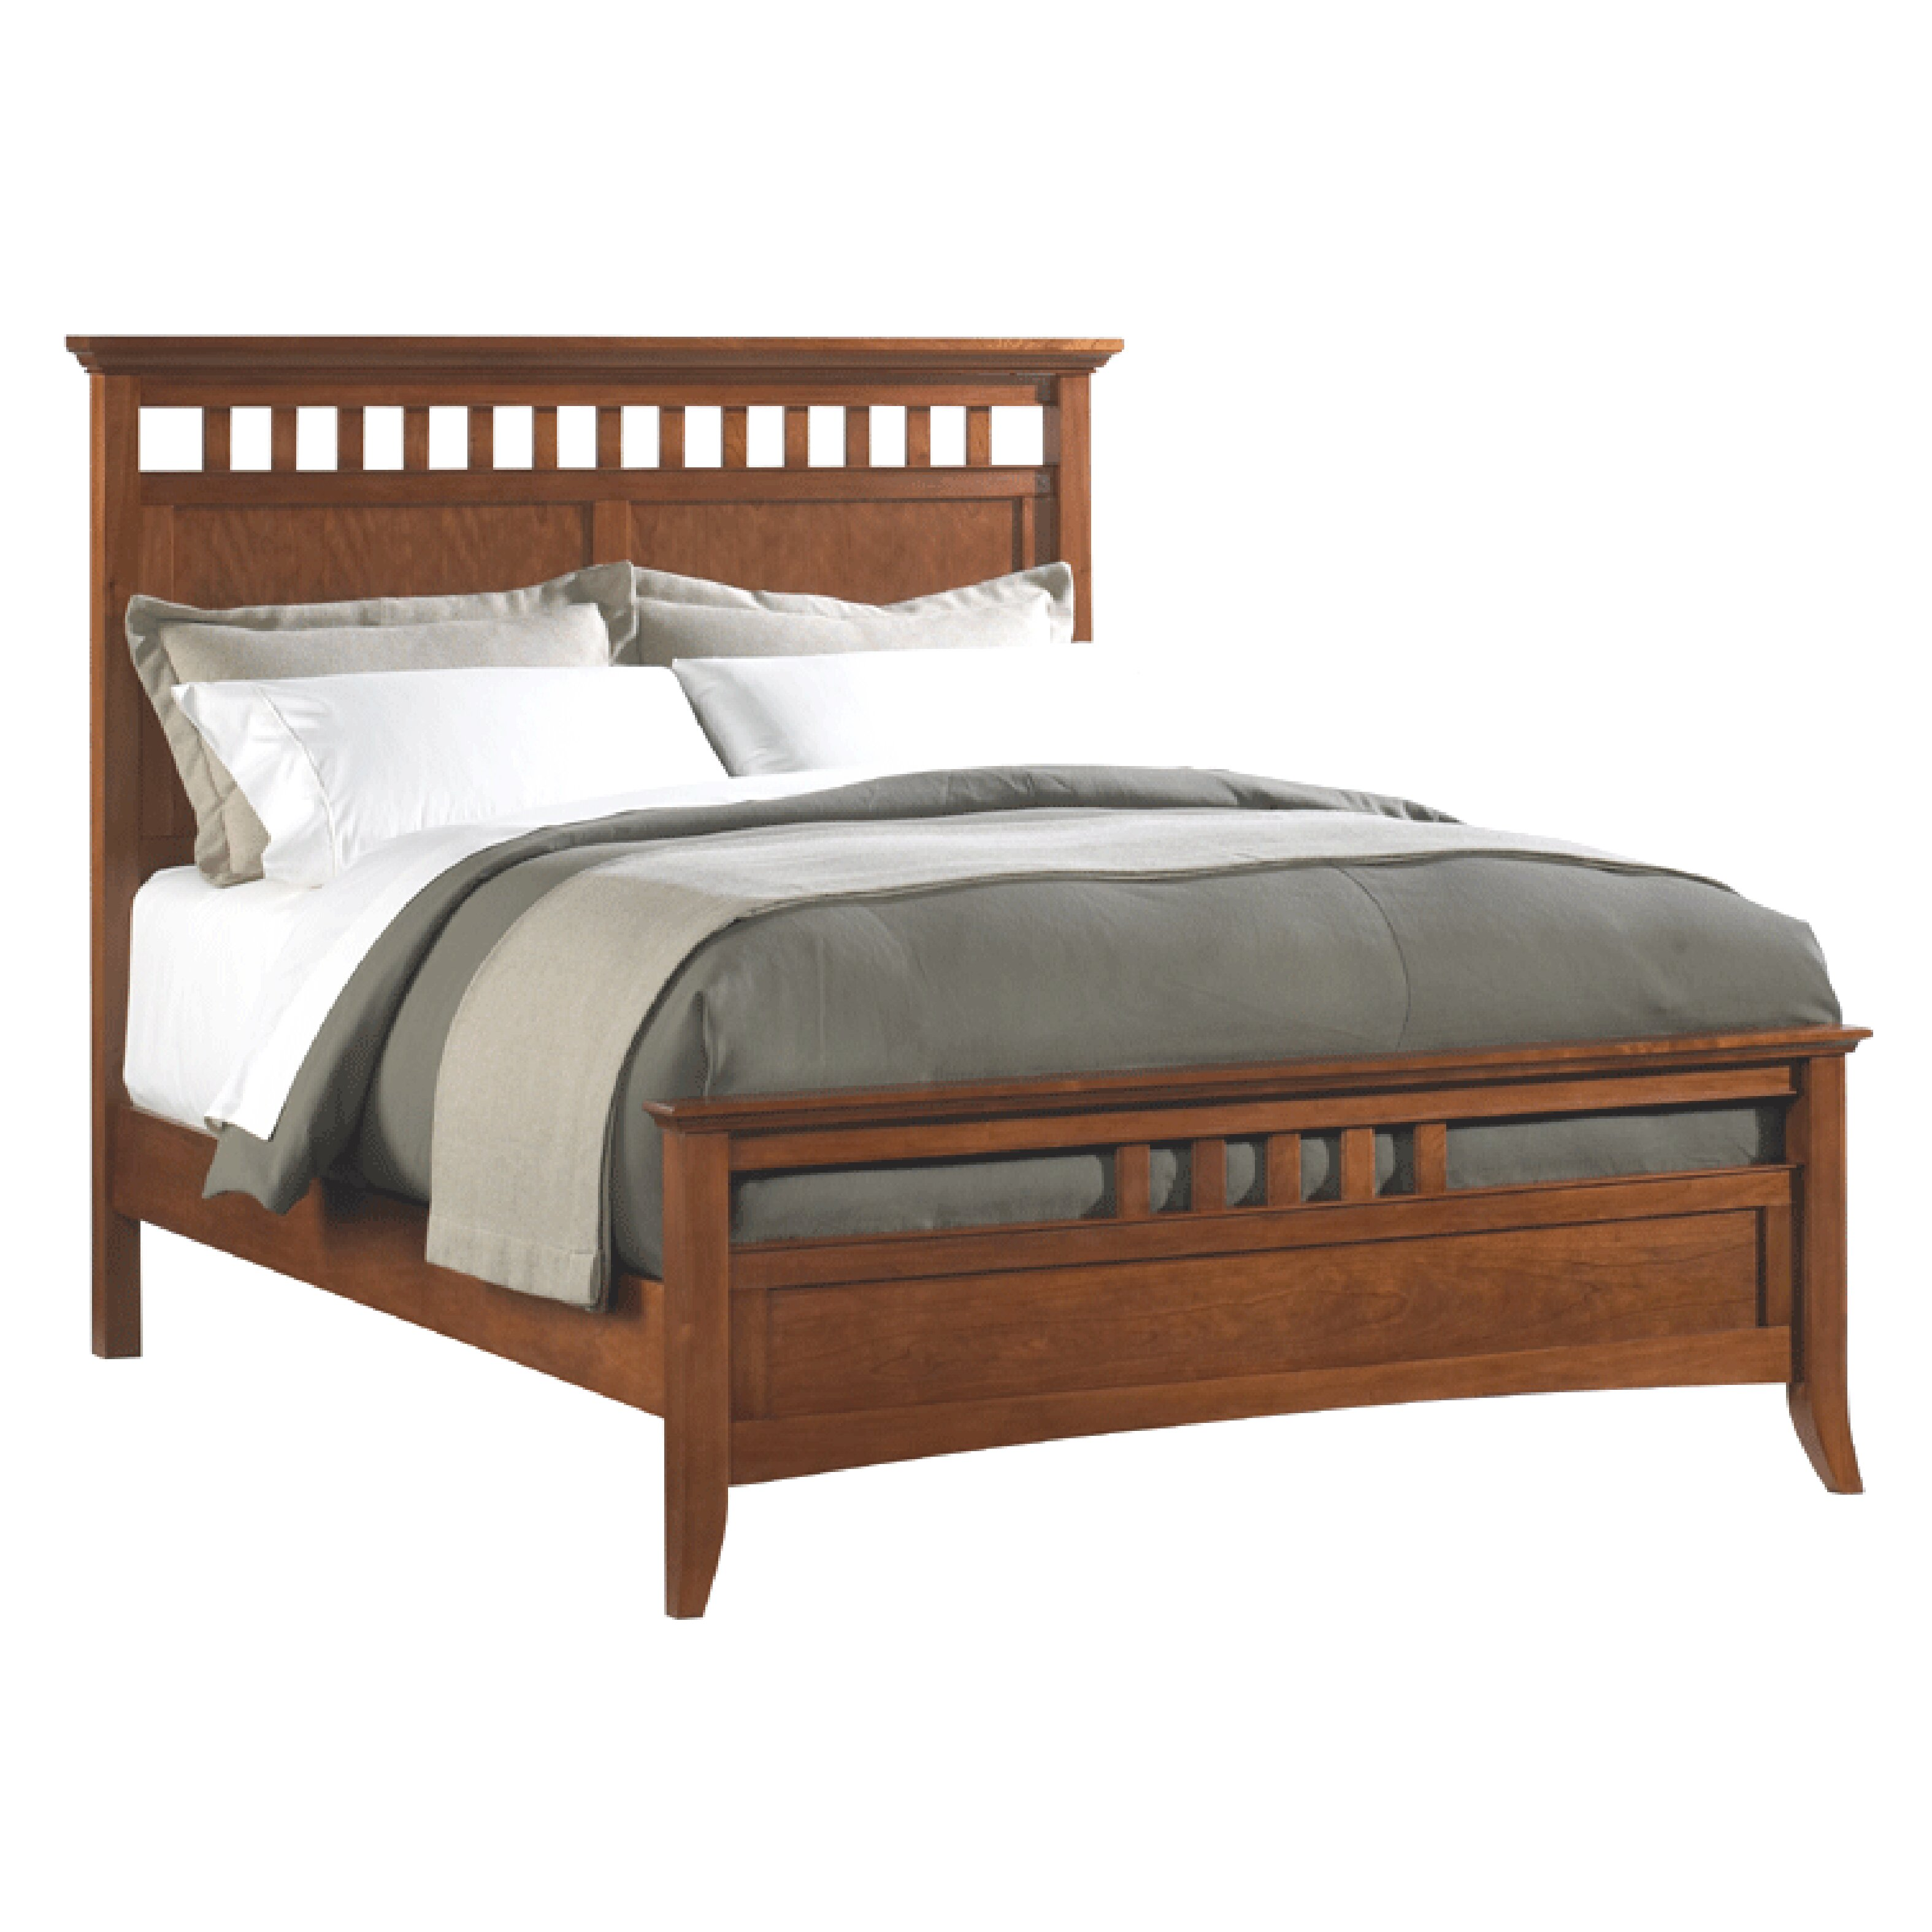 modern shaker wood headboard and footboard by darby home co